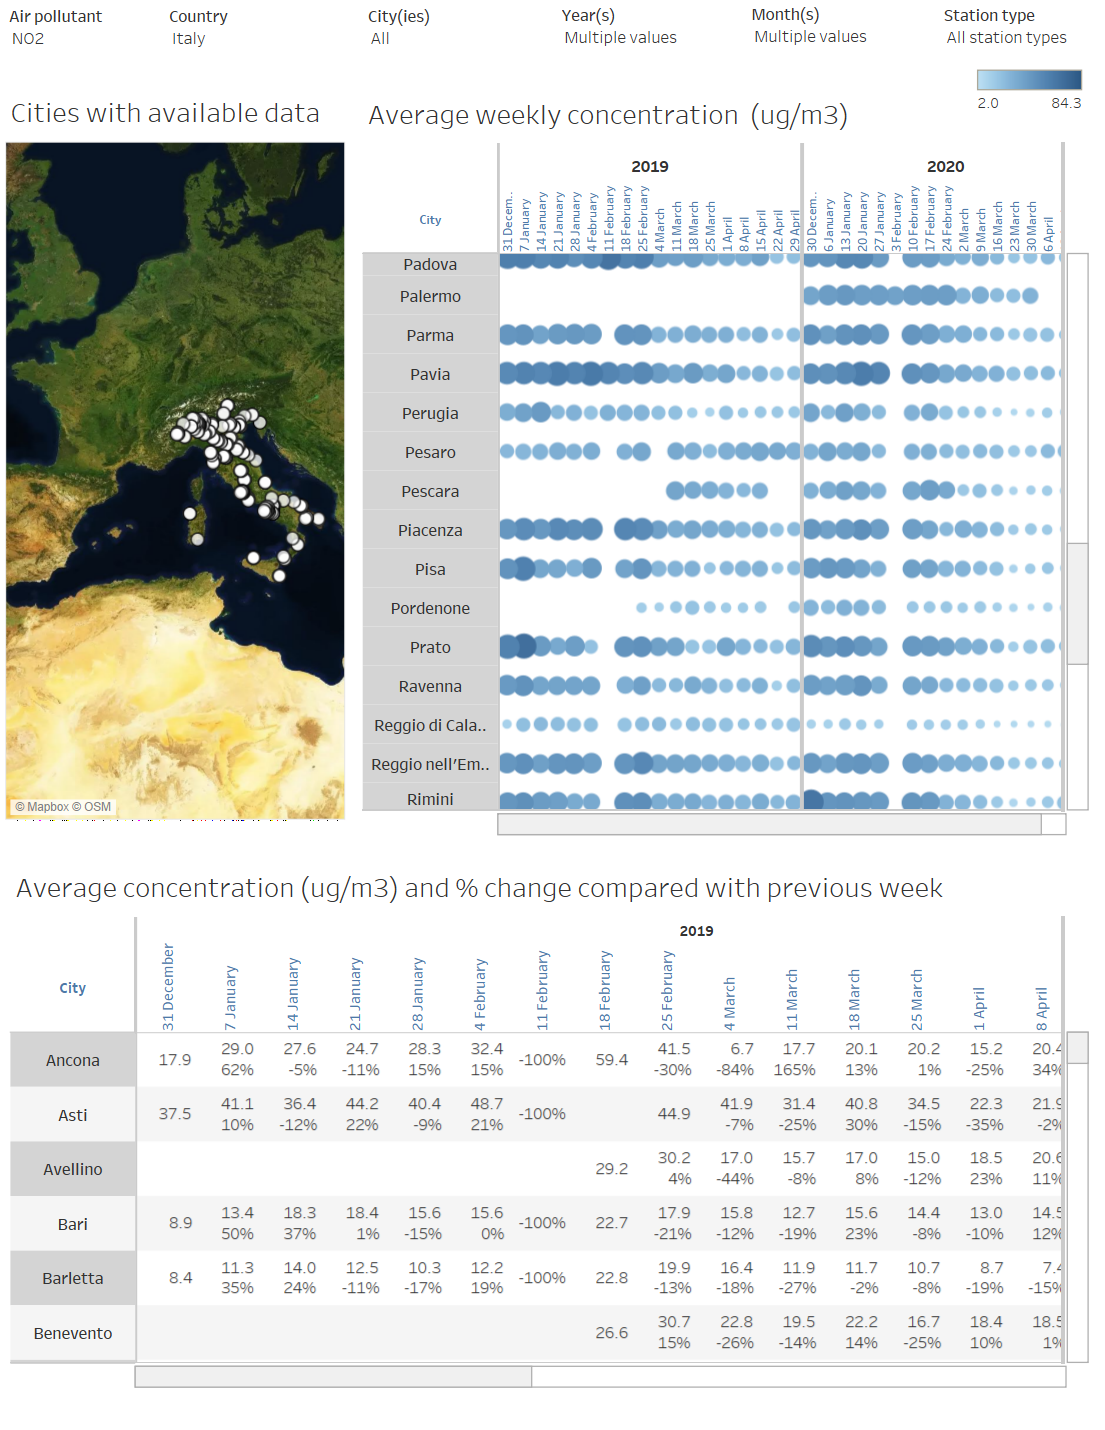 Air quality monitoring by the European Environment Agency